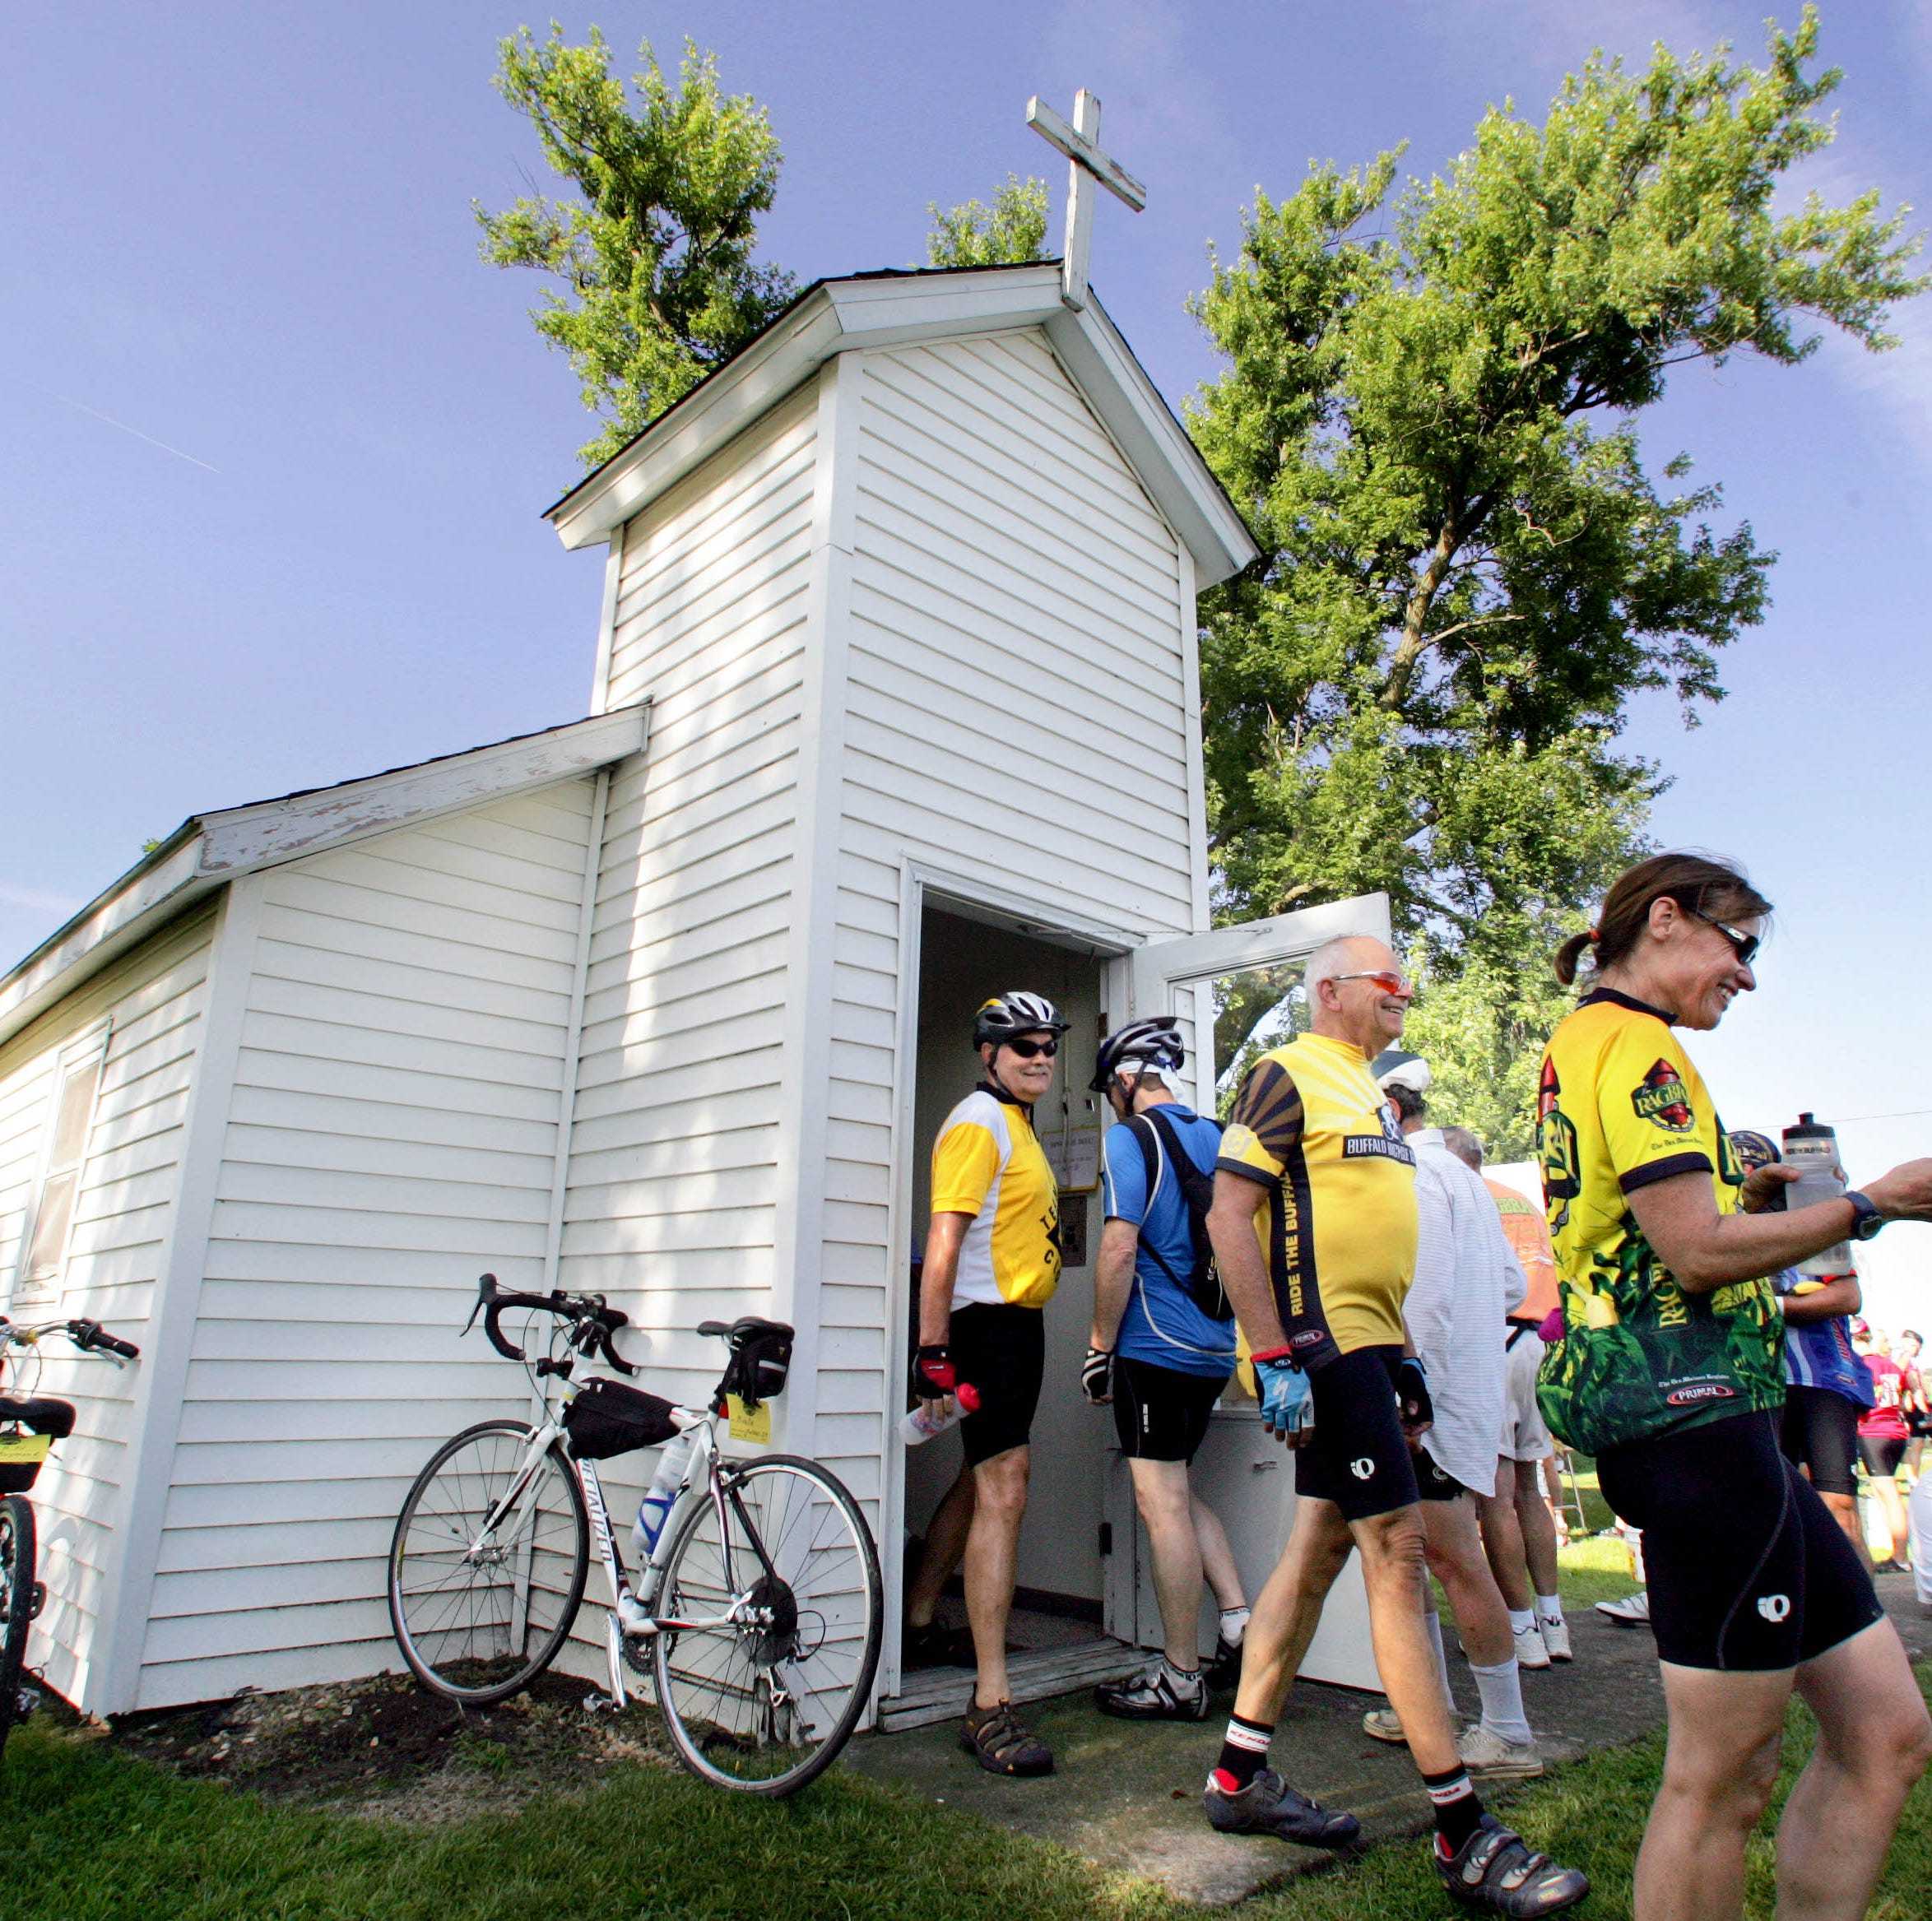 RAGBRAI 2019: Here's the complete route riders will follow this summer